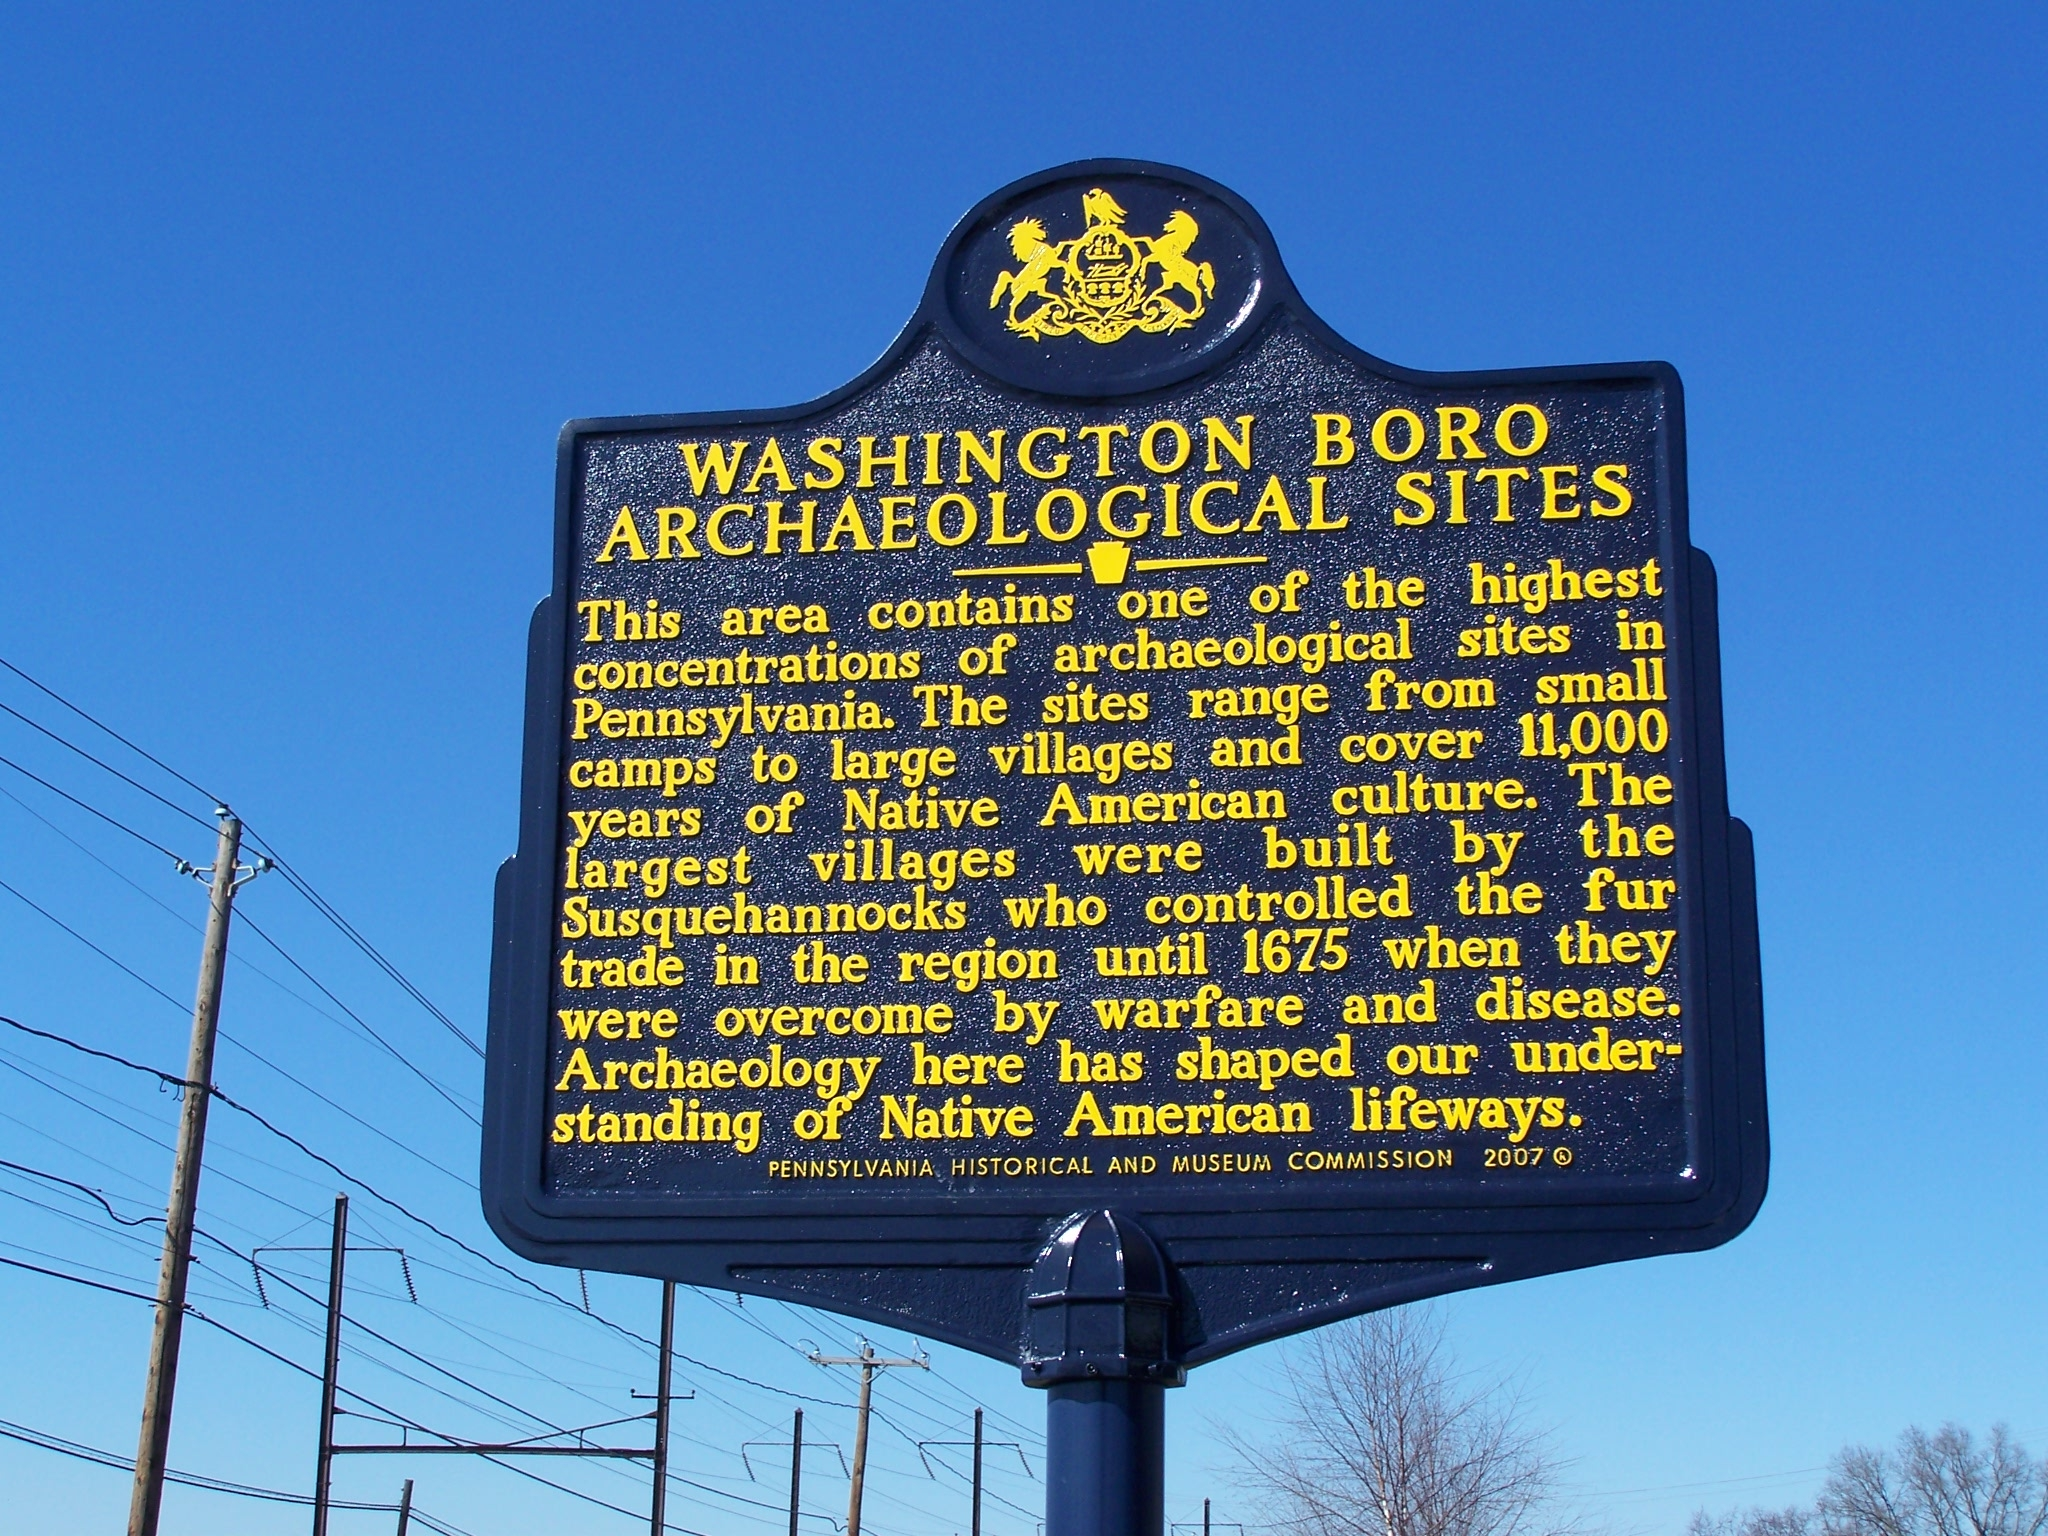 Washington Boro Archaeological Sites Marker